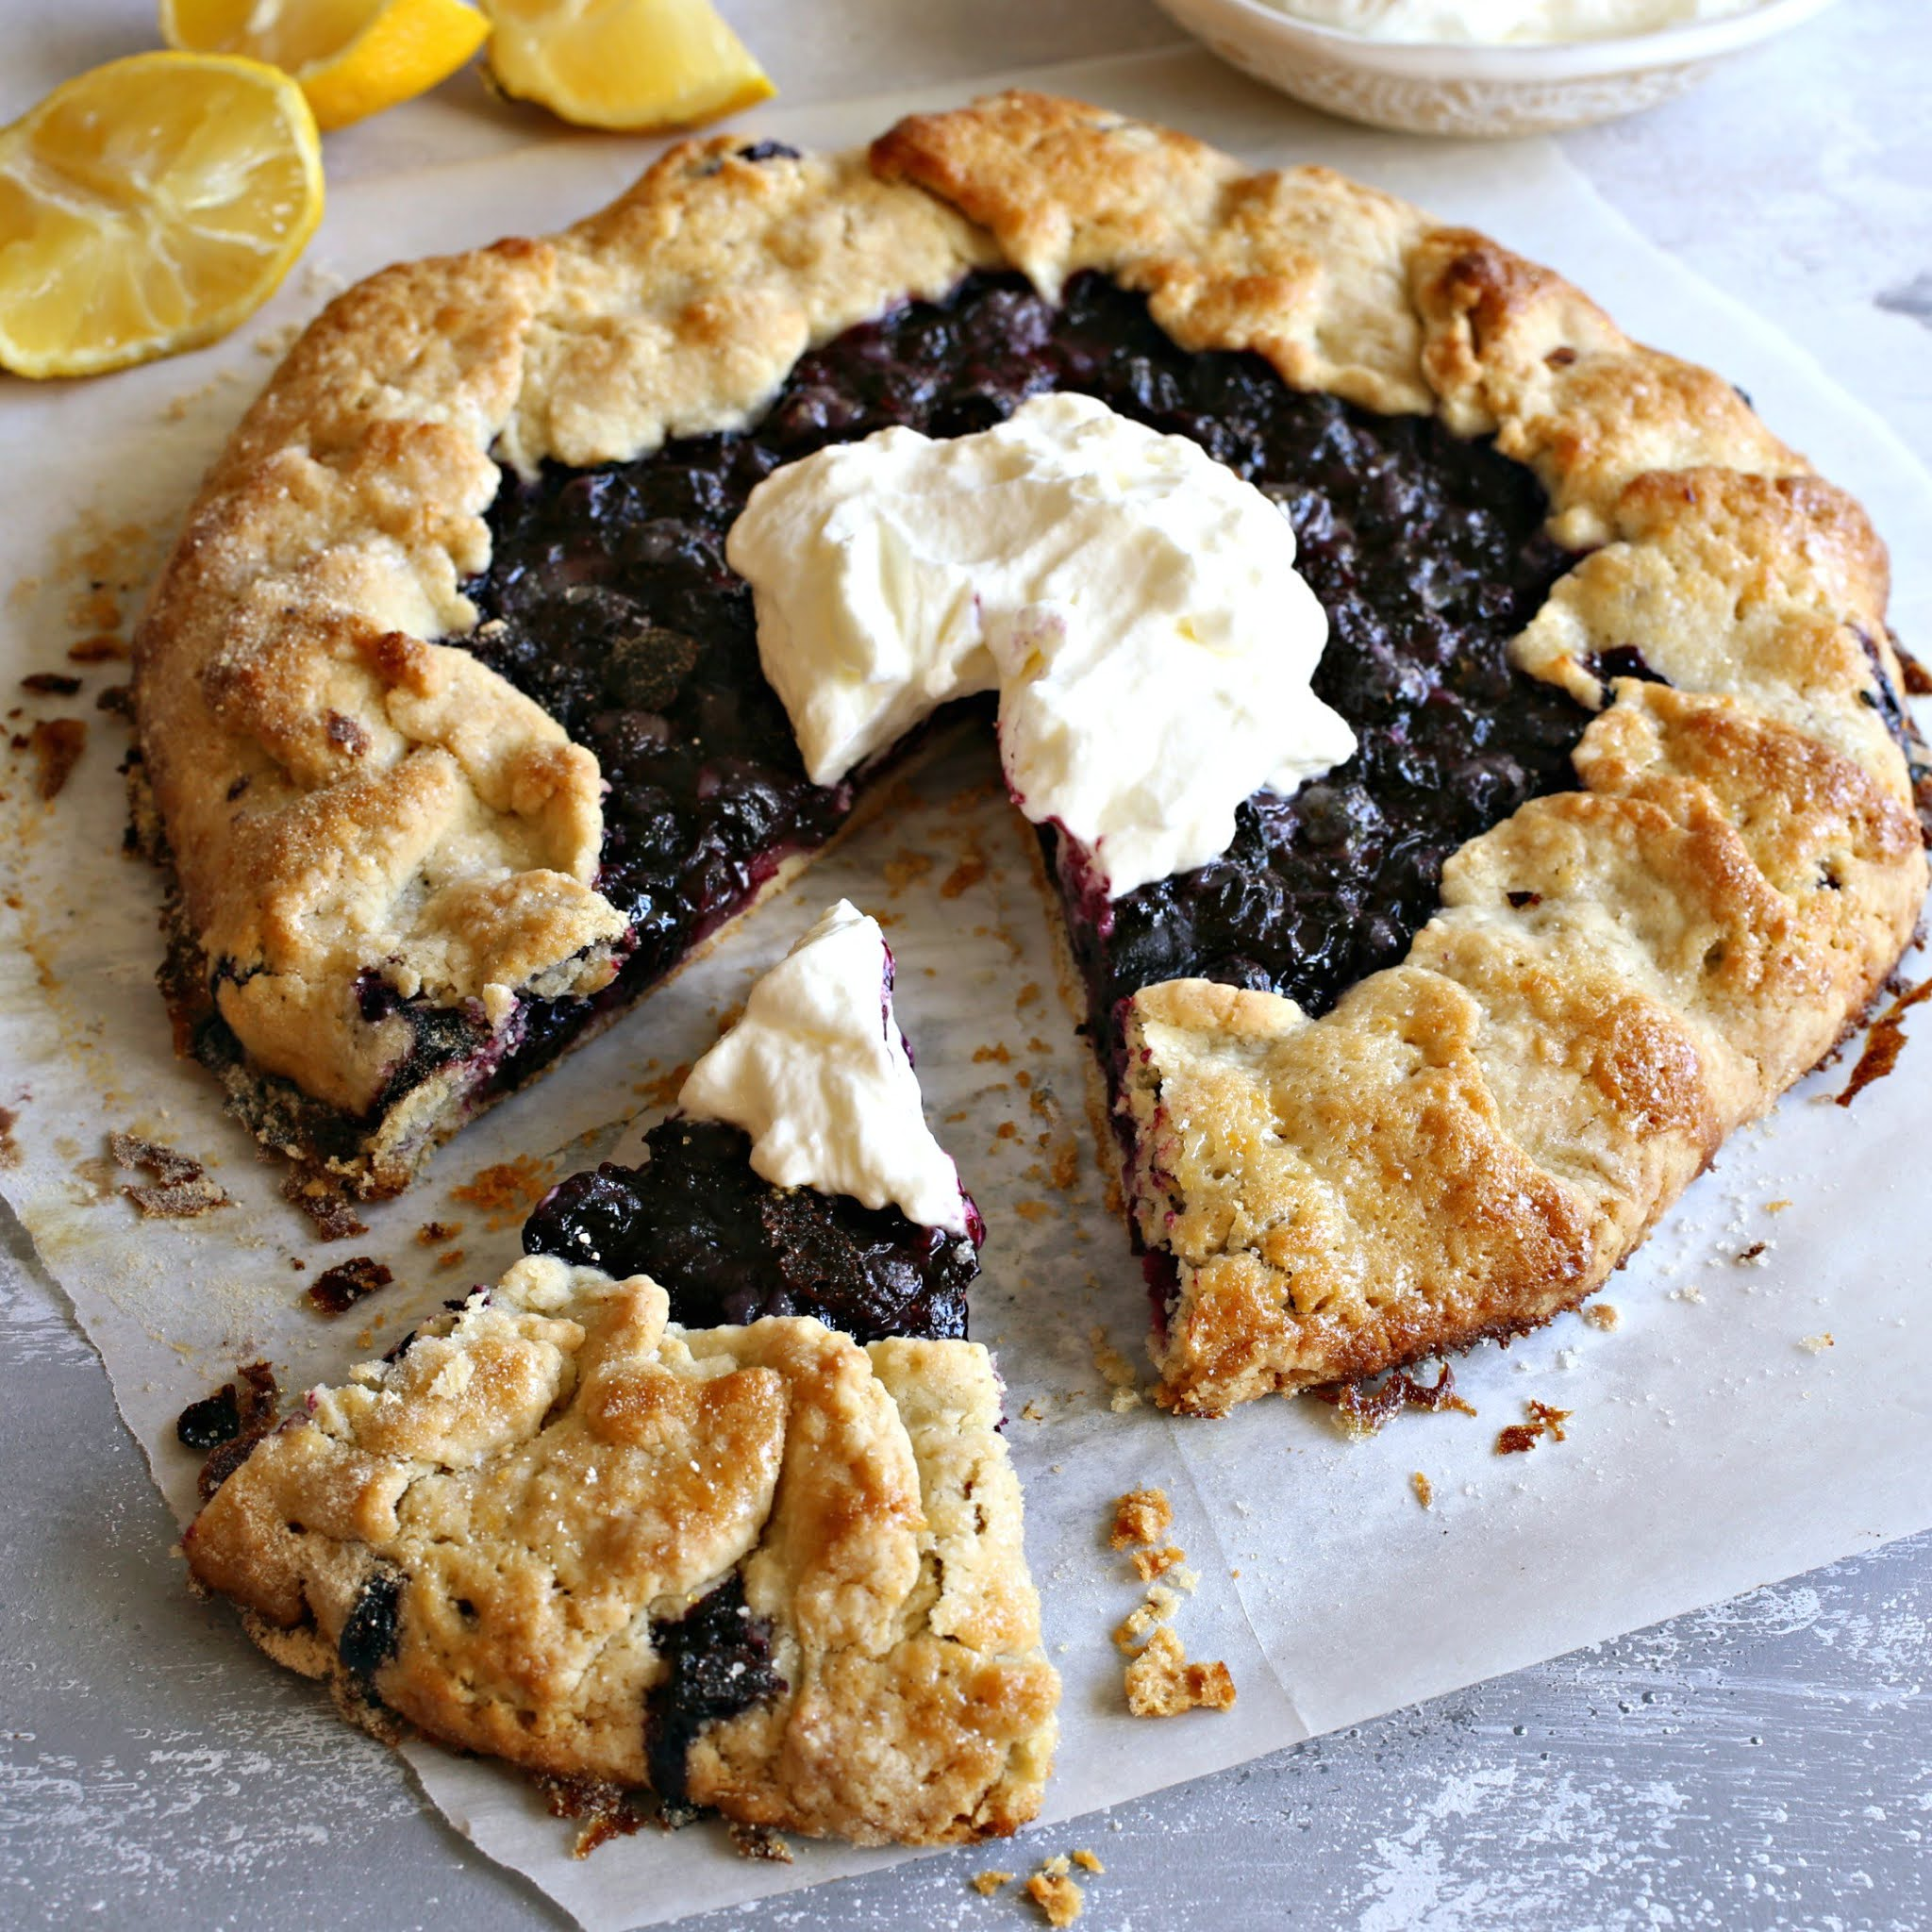 Recipe for a rustic, free-form blueberry and lemon pie.